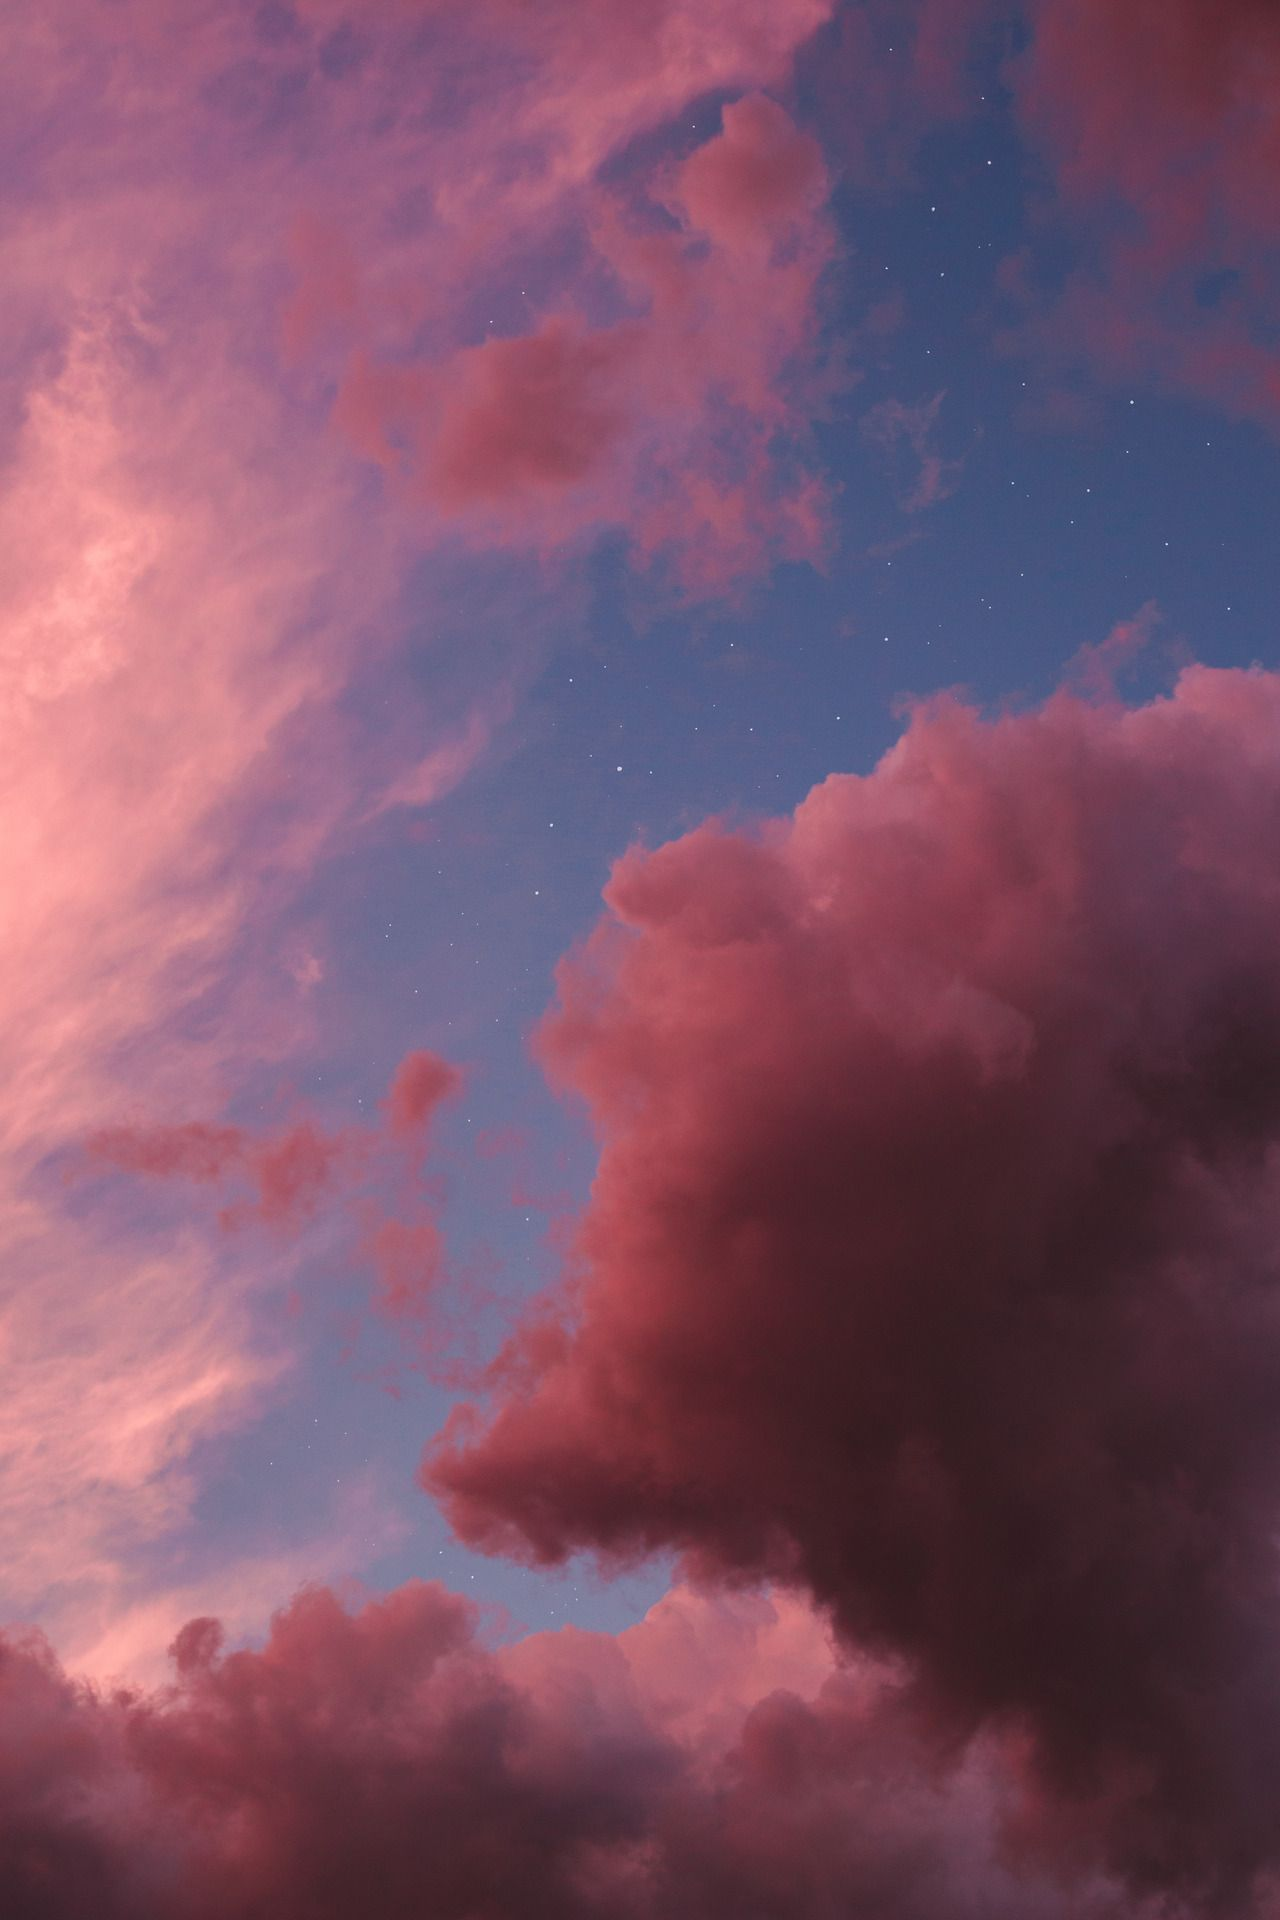 Sky Tumblr Aesthetic Tumblr Backgrounds Sky Aesthetic Clouds